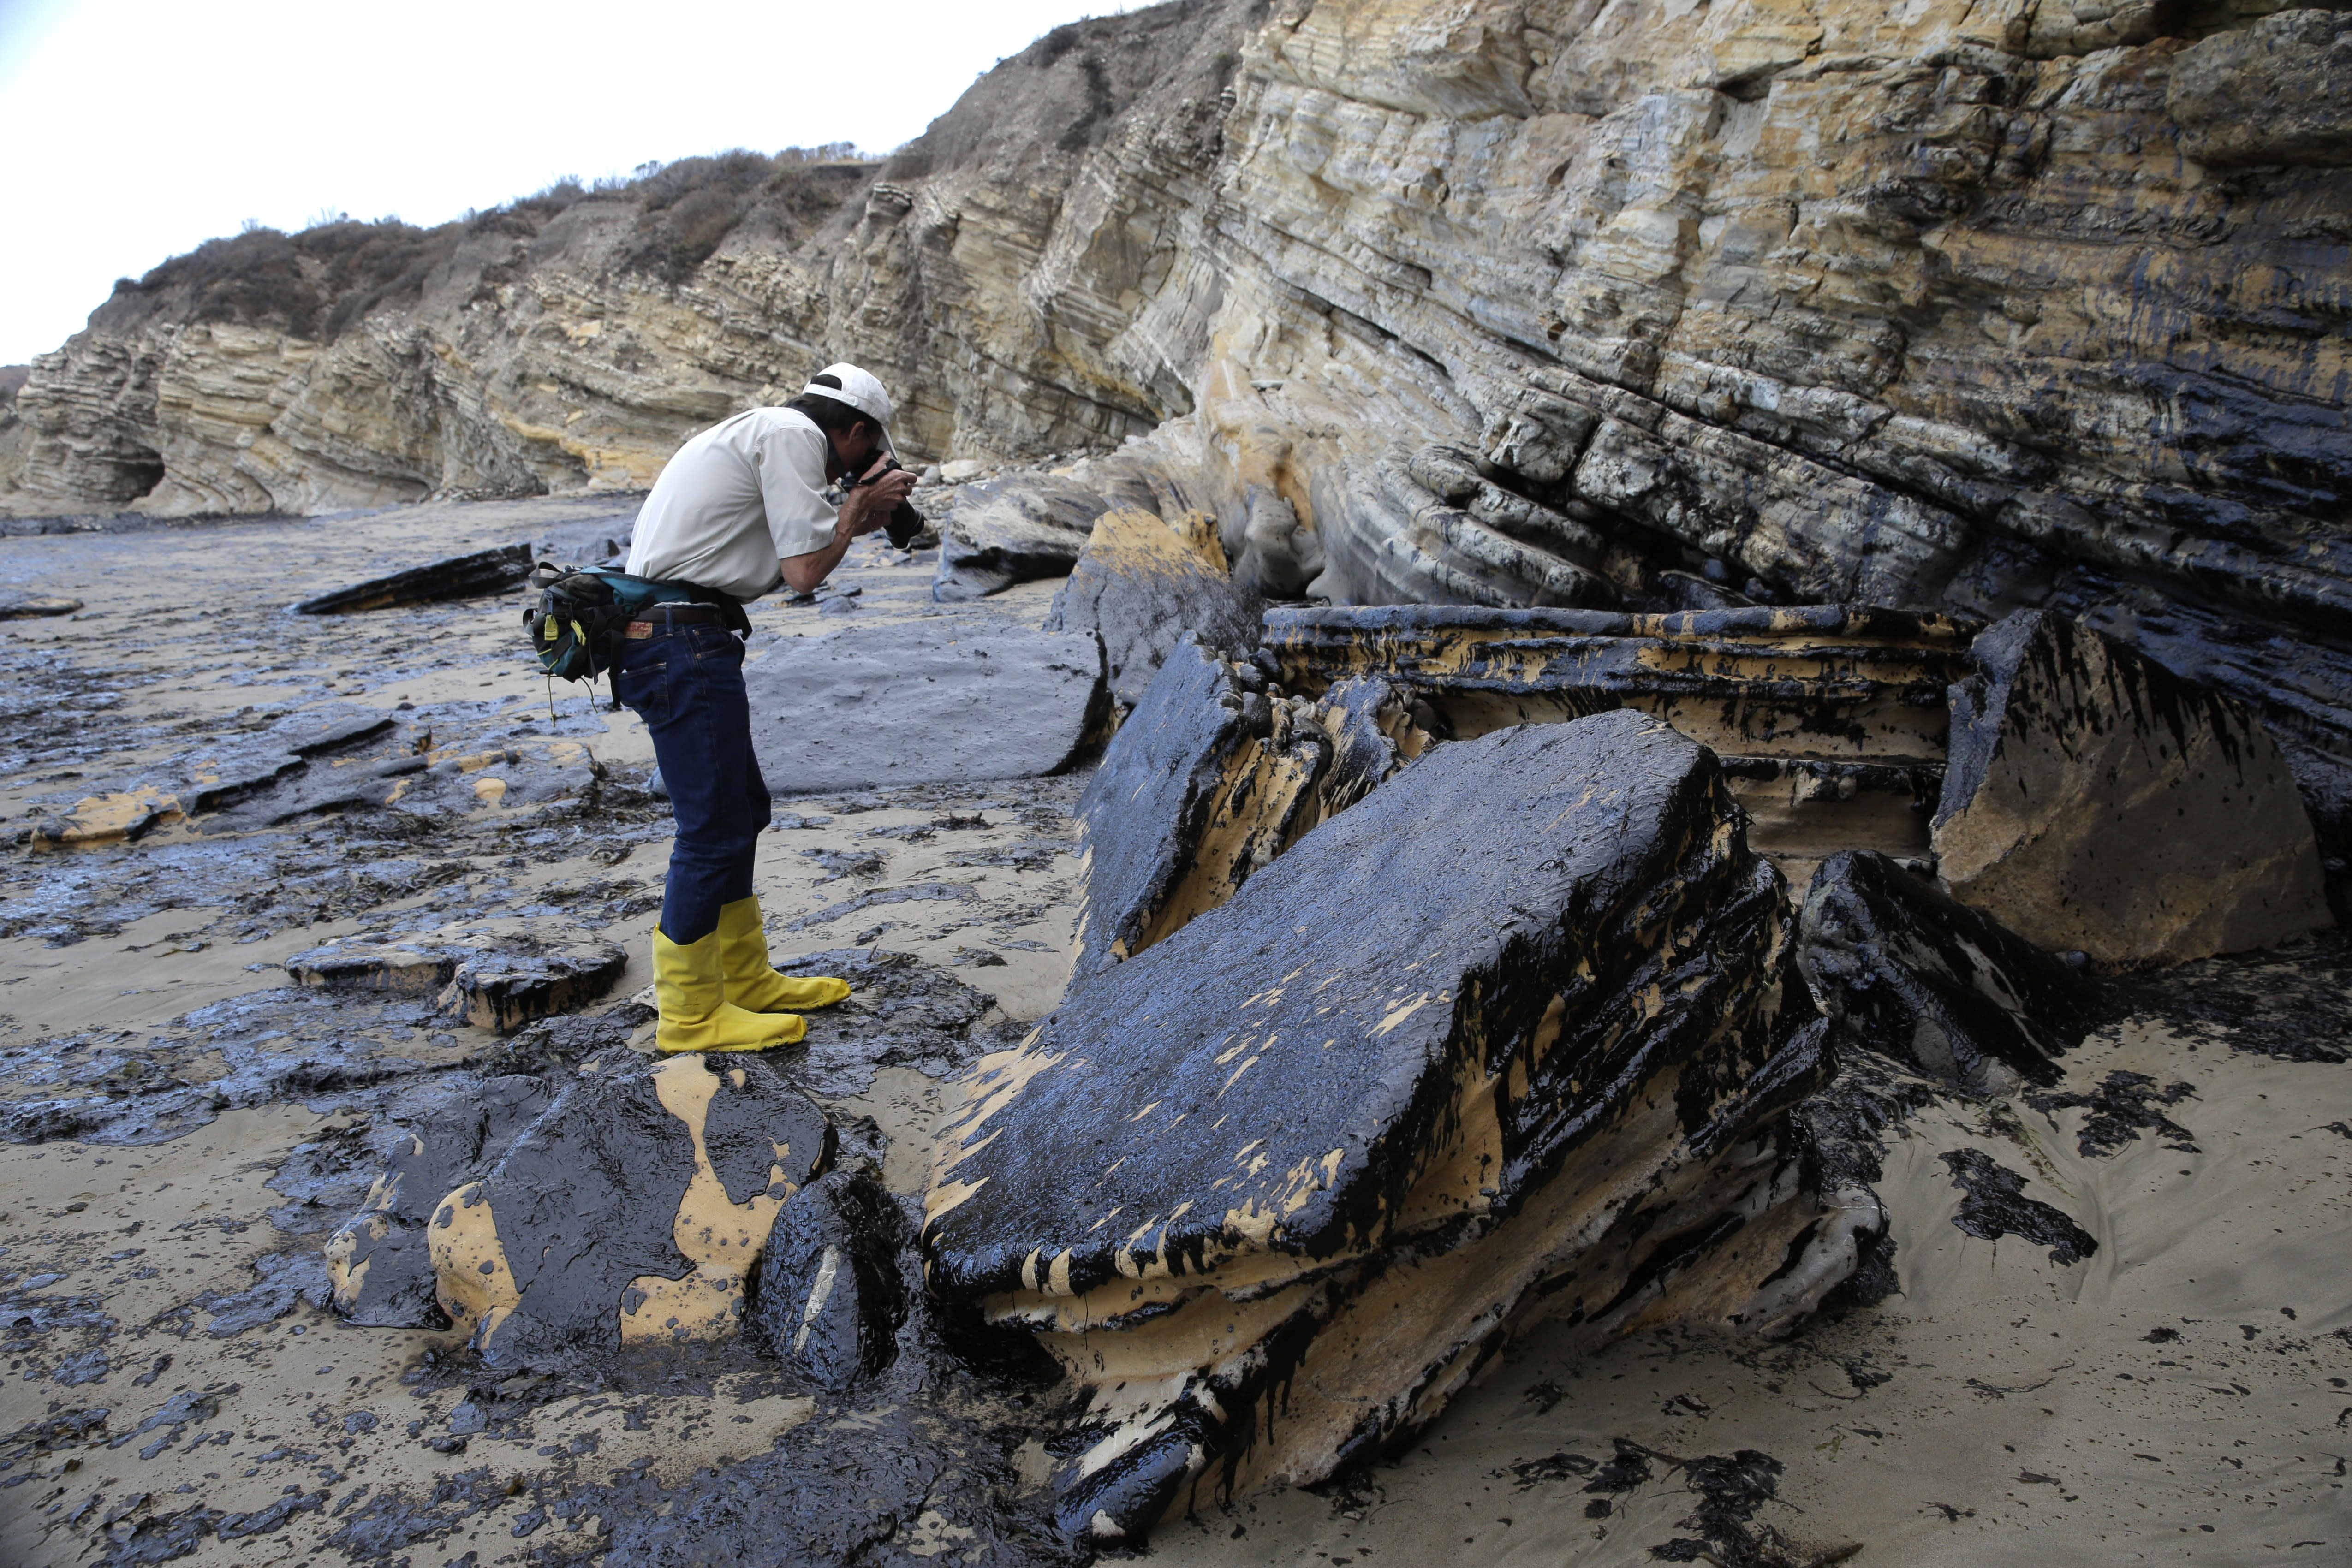 Finding cause of California oil spill could take months